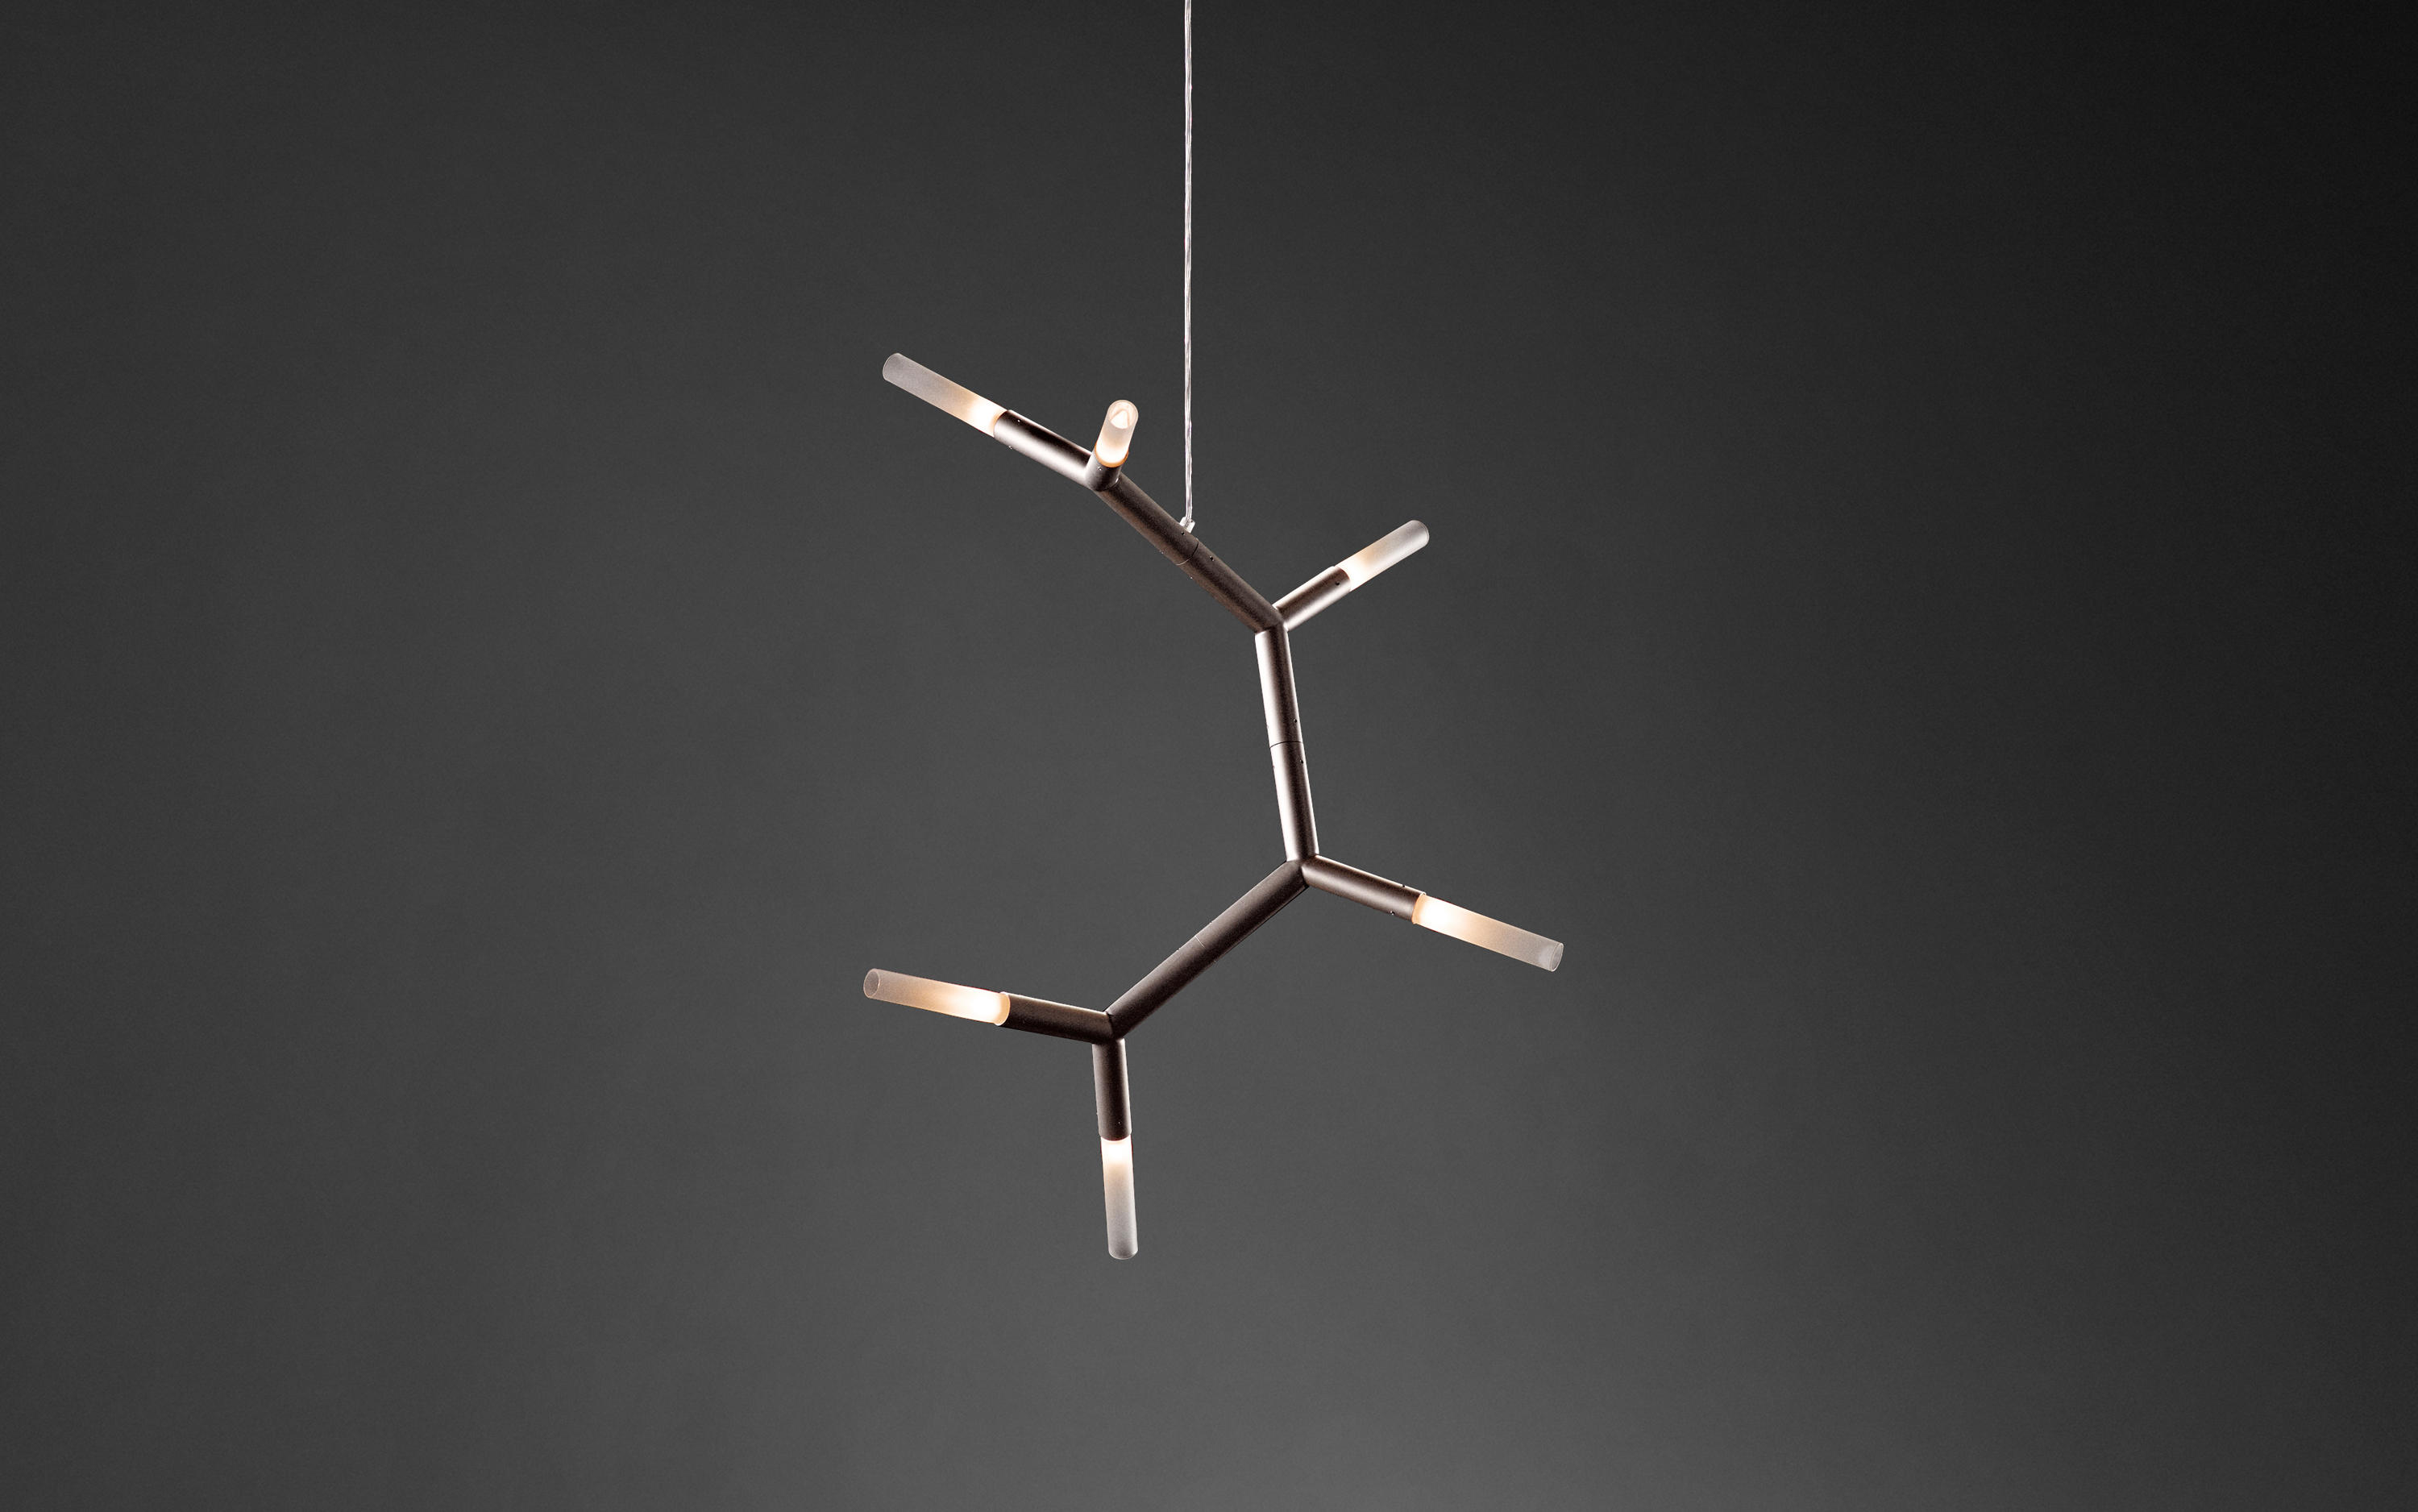 BCAA Lamp by Christopher Boots